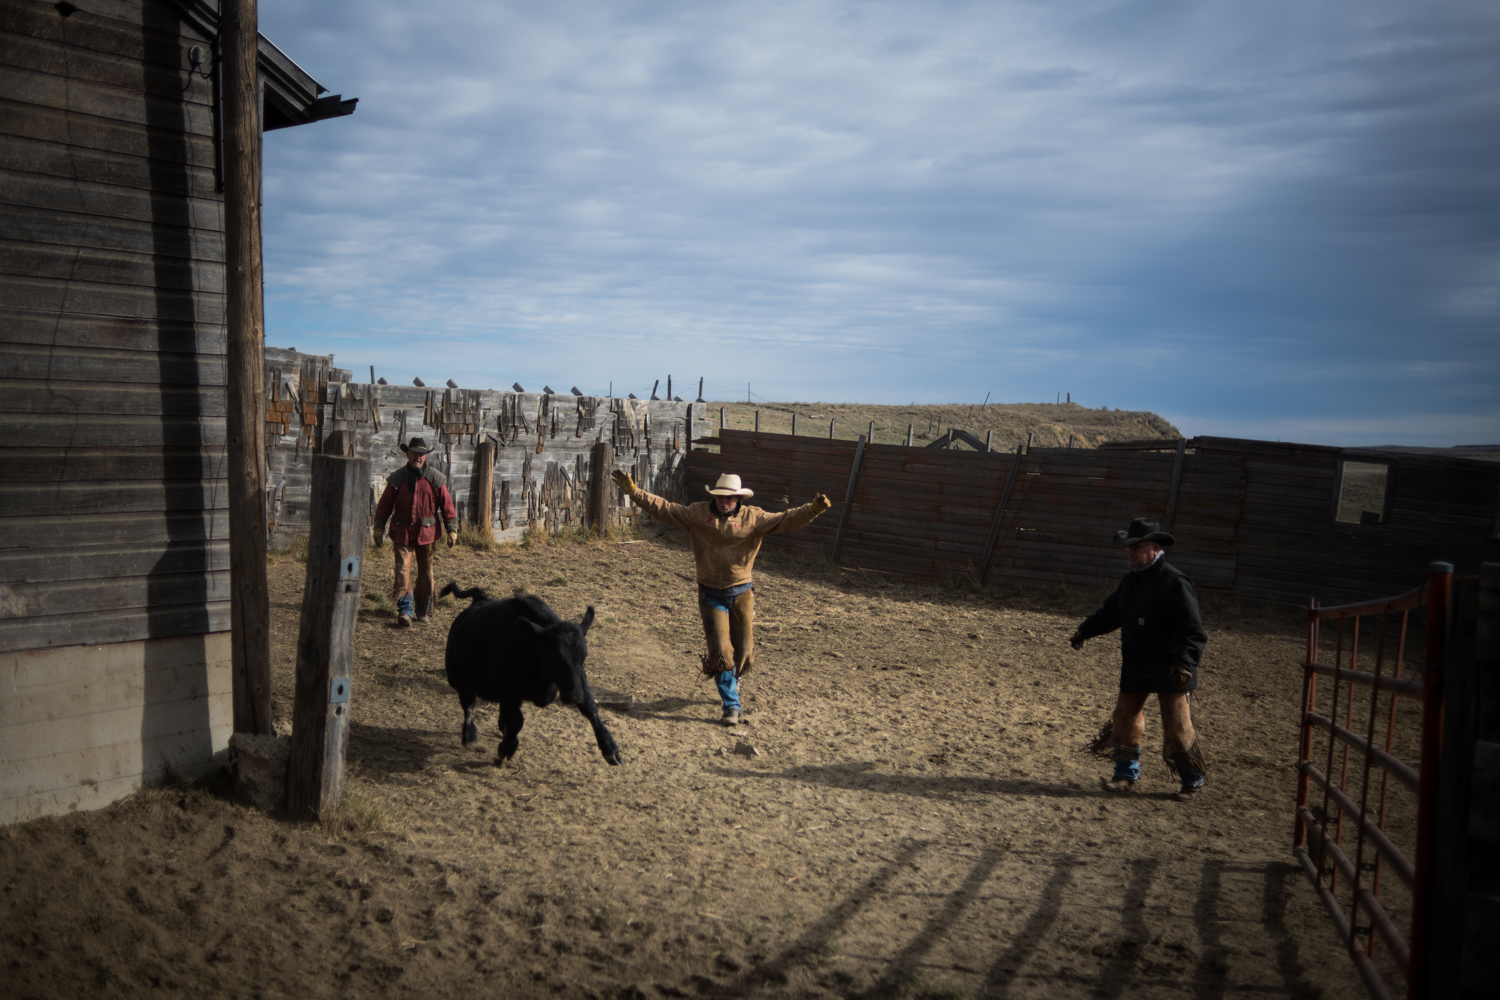 """45�38'23.3""""N 102�02'21.7""""W. 121 miles from the nearest McDonald's.Cowboys scare a calf into a pen while sorting them for sale on land owned by a grazing association west of Meadow, SD on October 8, 2017. Grazing associations provide a way for multiple ranchers to defray the costs of land owning and usage for grazing cattle and on occasion provide access to national grasslands and grazing areas."""